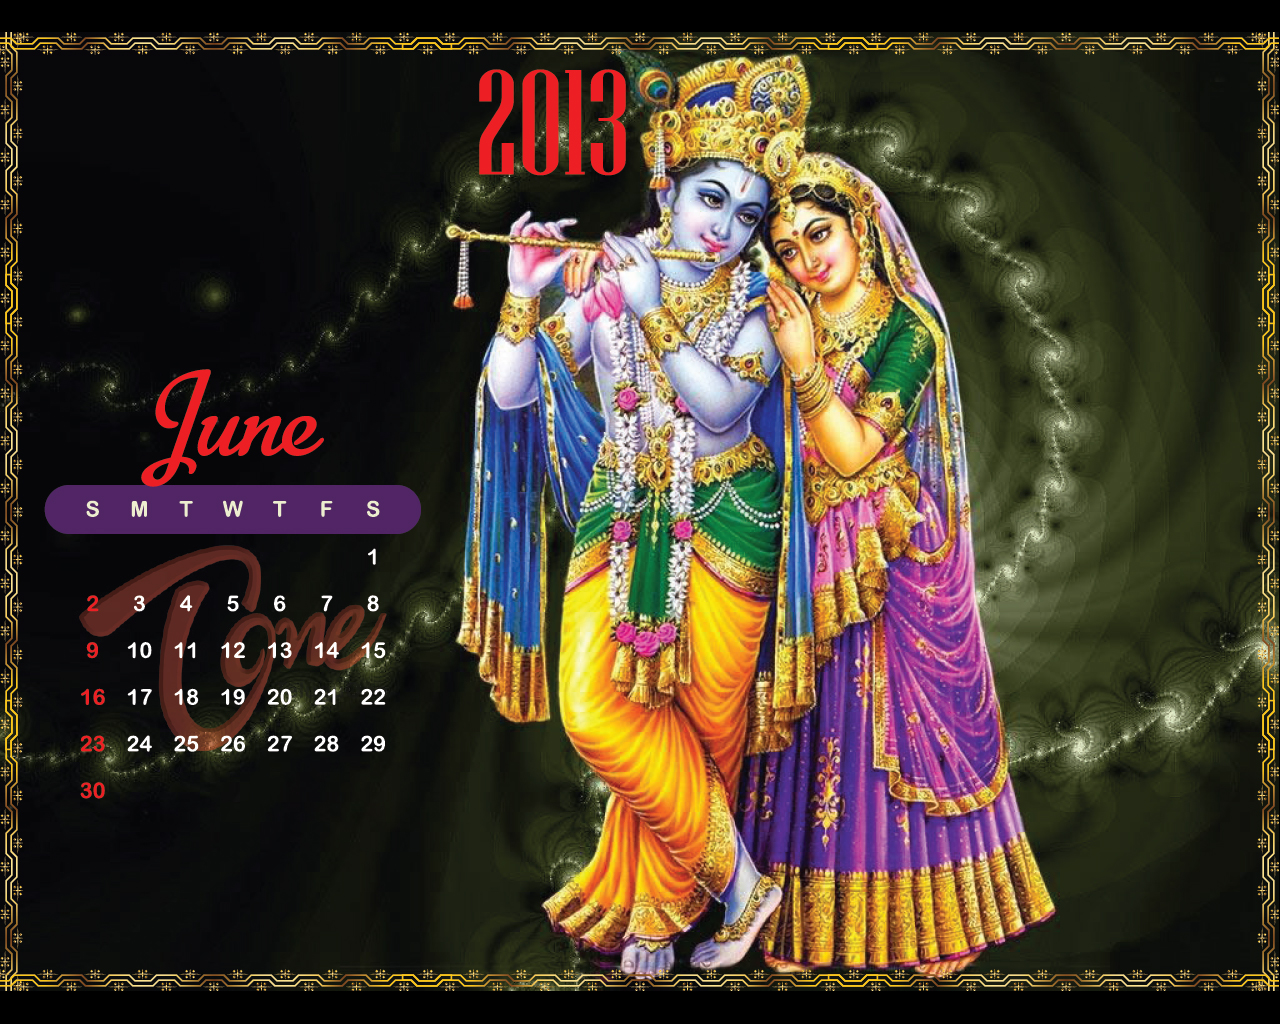 Astrology in hindi 2016 by date of birth and time chinese zodiac it have the details of janmanakshatra birth star tithi karana nithyayoga sunrise sunset ayanamsaobliquity sidereal time nakshatra hora nvjuhfo Choice Image